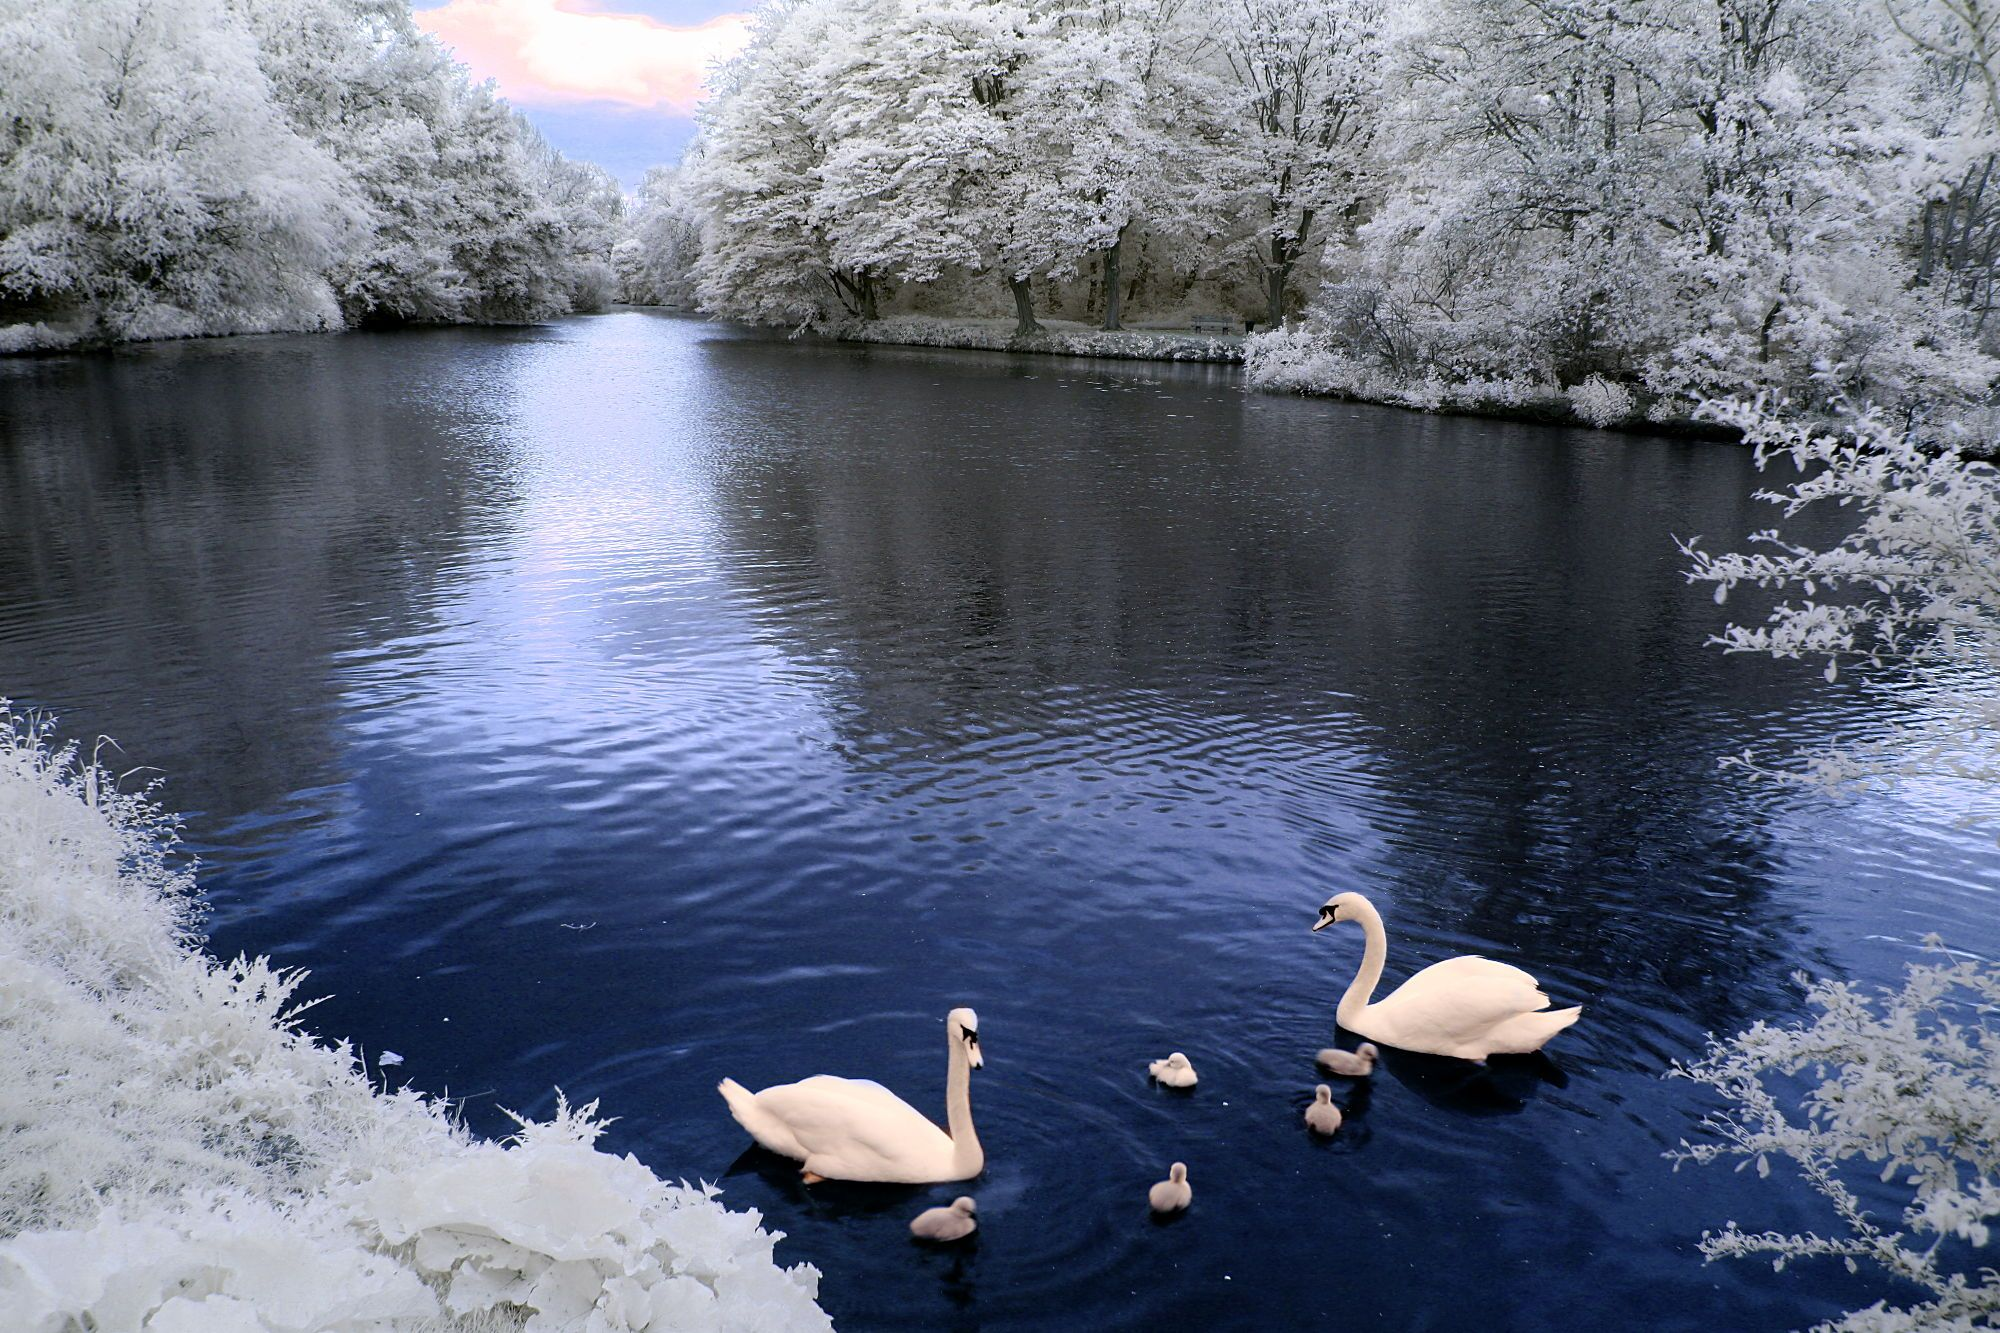 swans on the outskirts of frankfurt, germany - seen in false color infrared. may 11th, 2013.